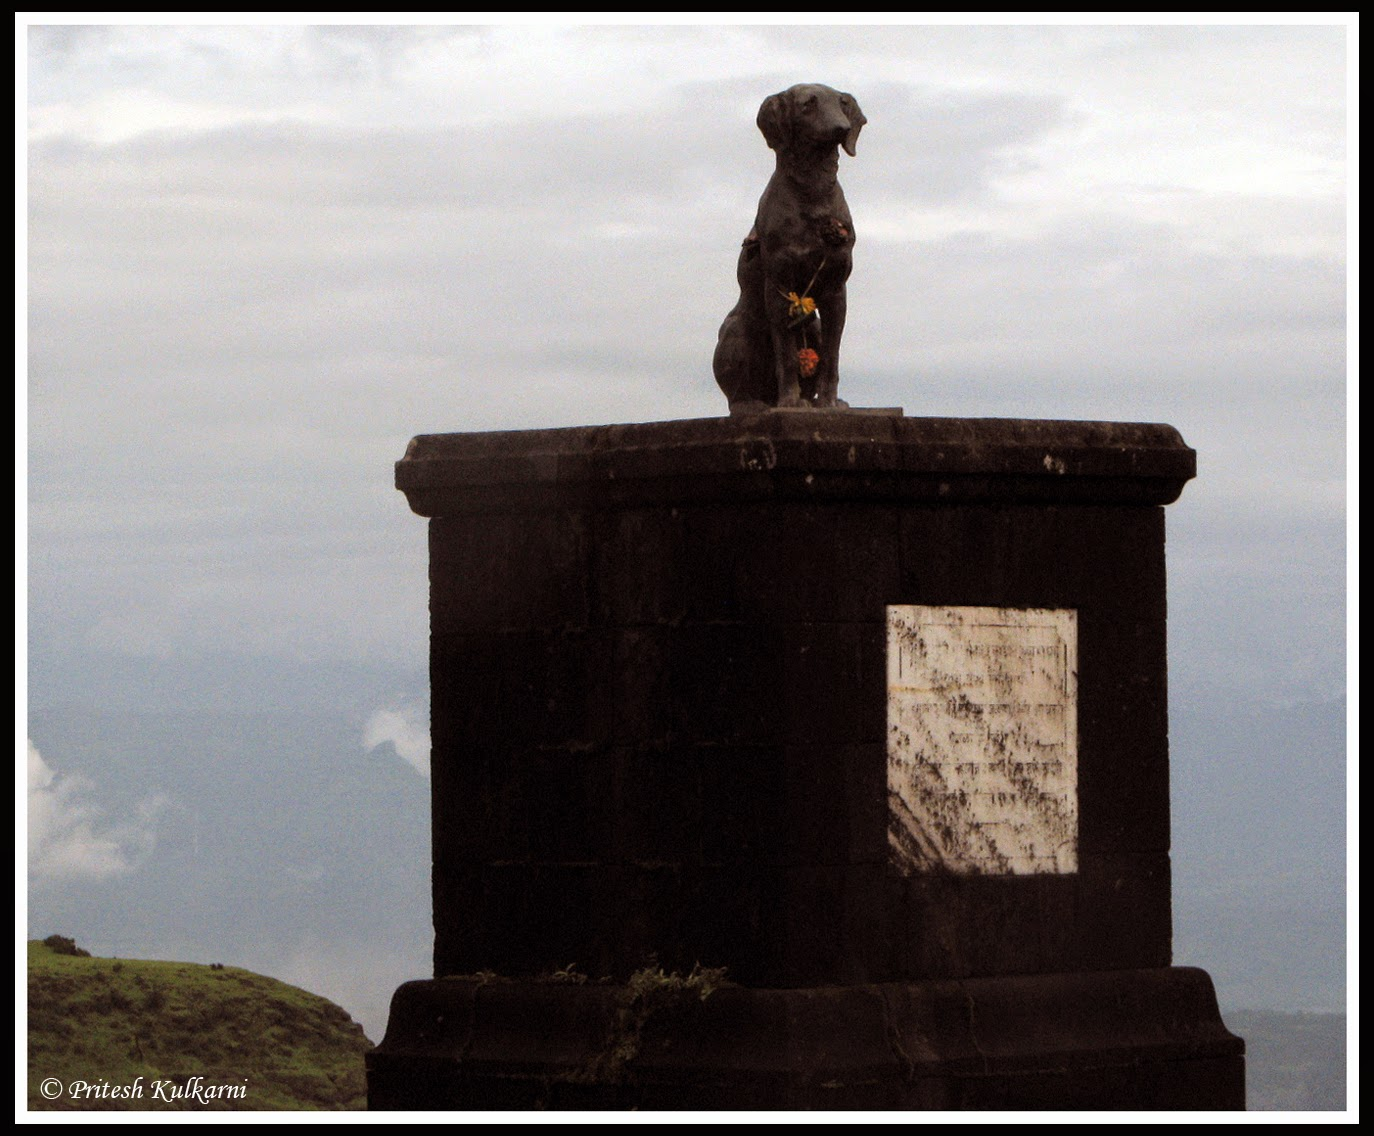 Statue of Waghya dog